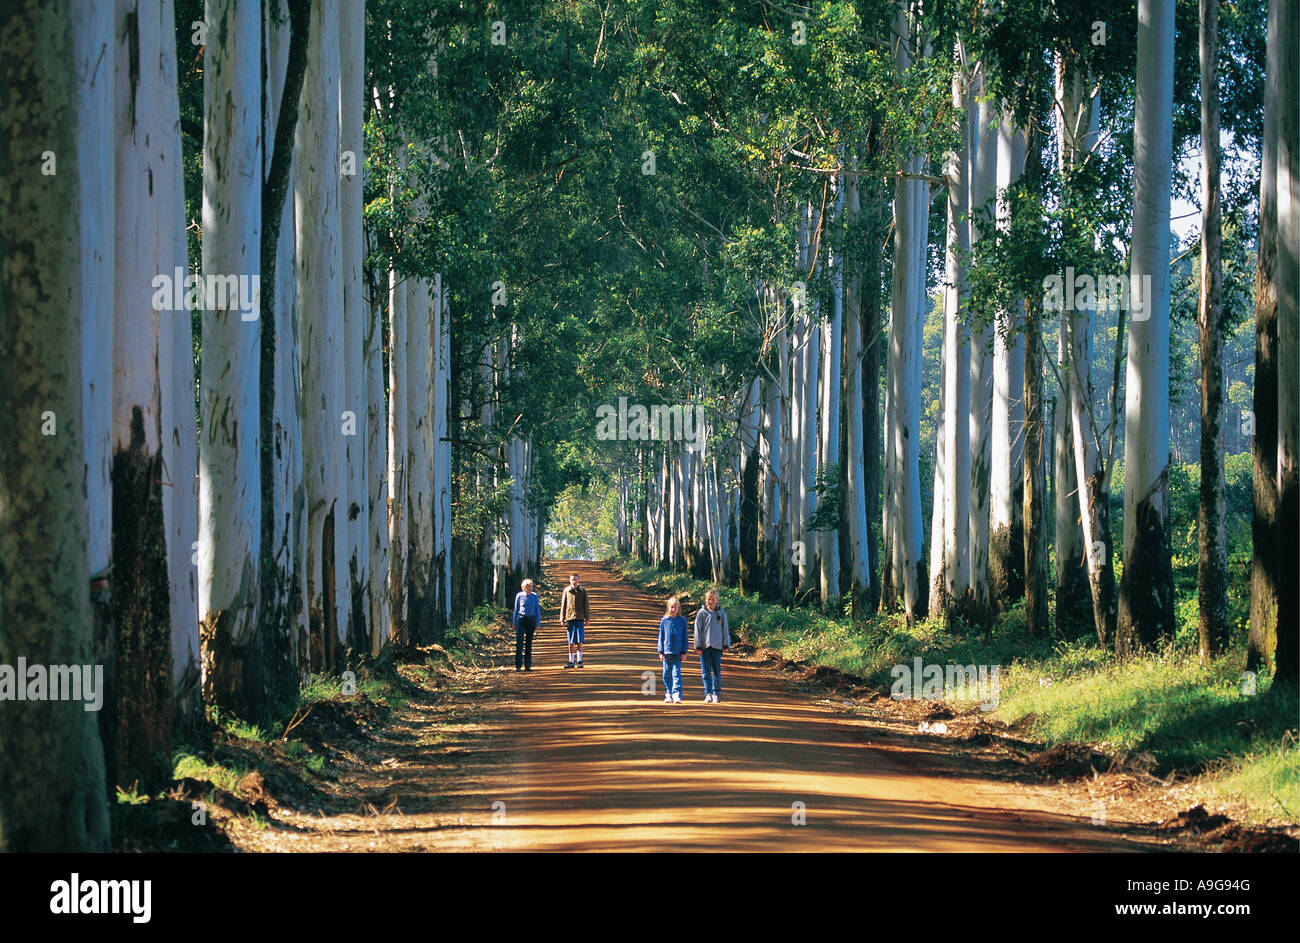 White people having a stroll through an avenue of Blue gum trees Northern Province South Africa - Stock Image